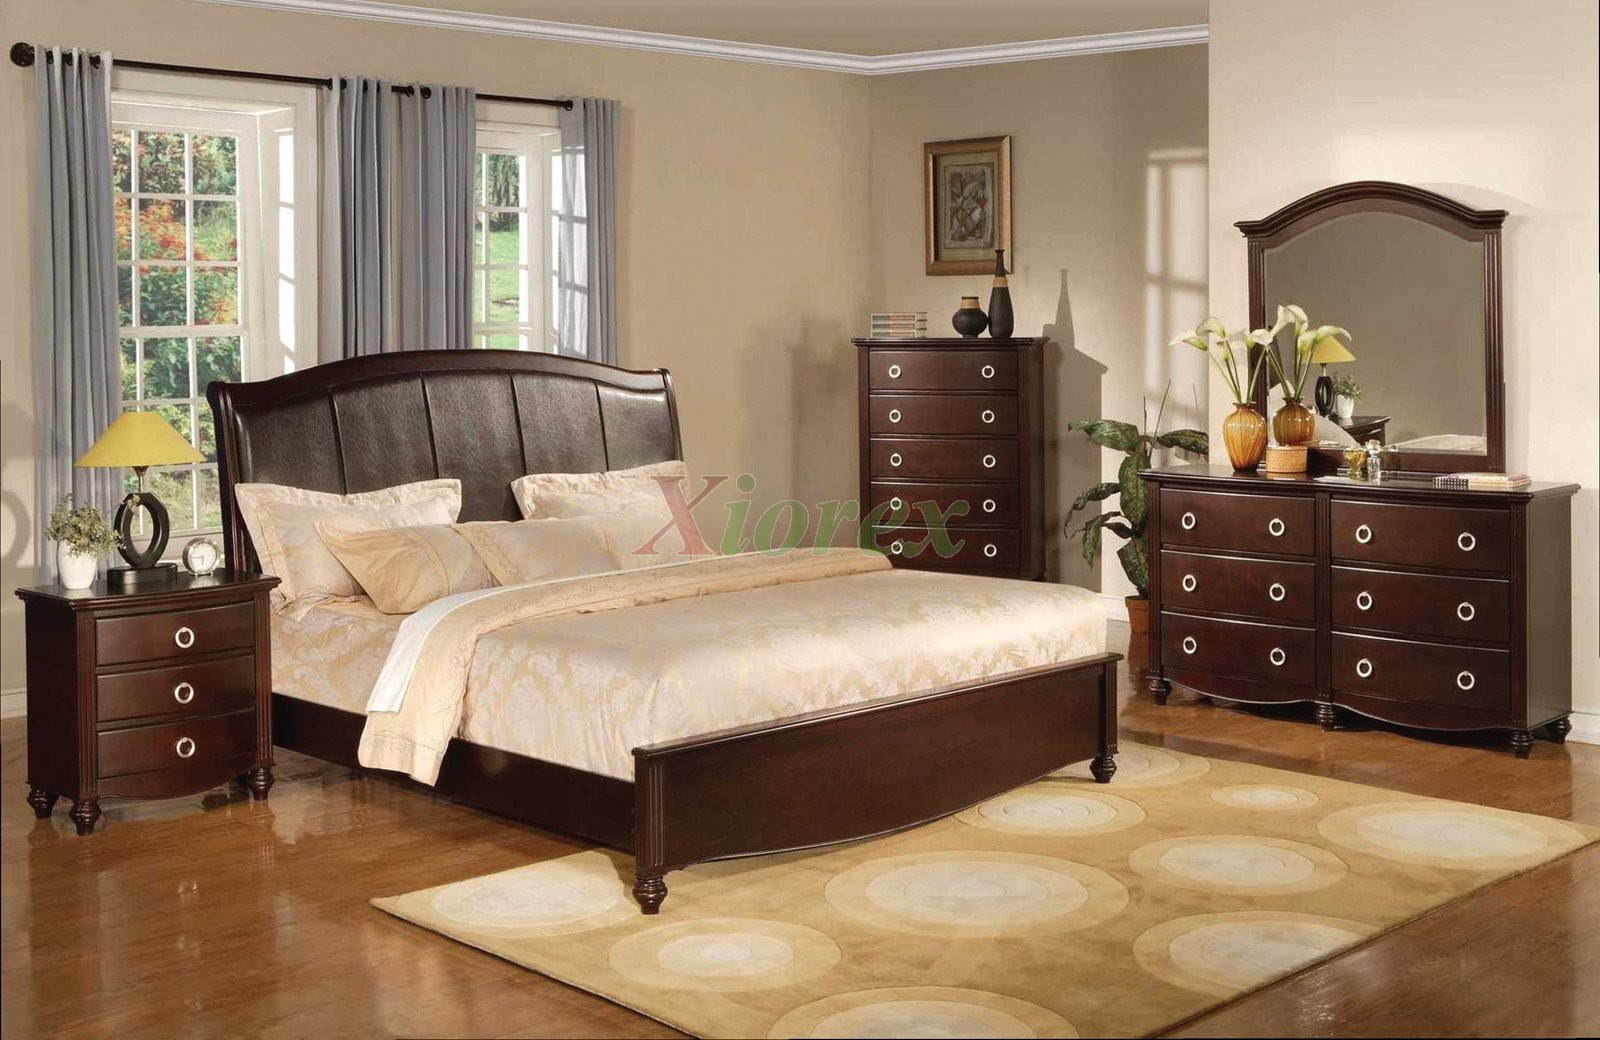 Platform Bedroom Furniture Set With Leather Headboard 133 Xiorex. Bedroom Sets With Leather Headboards   Headboard Designs